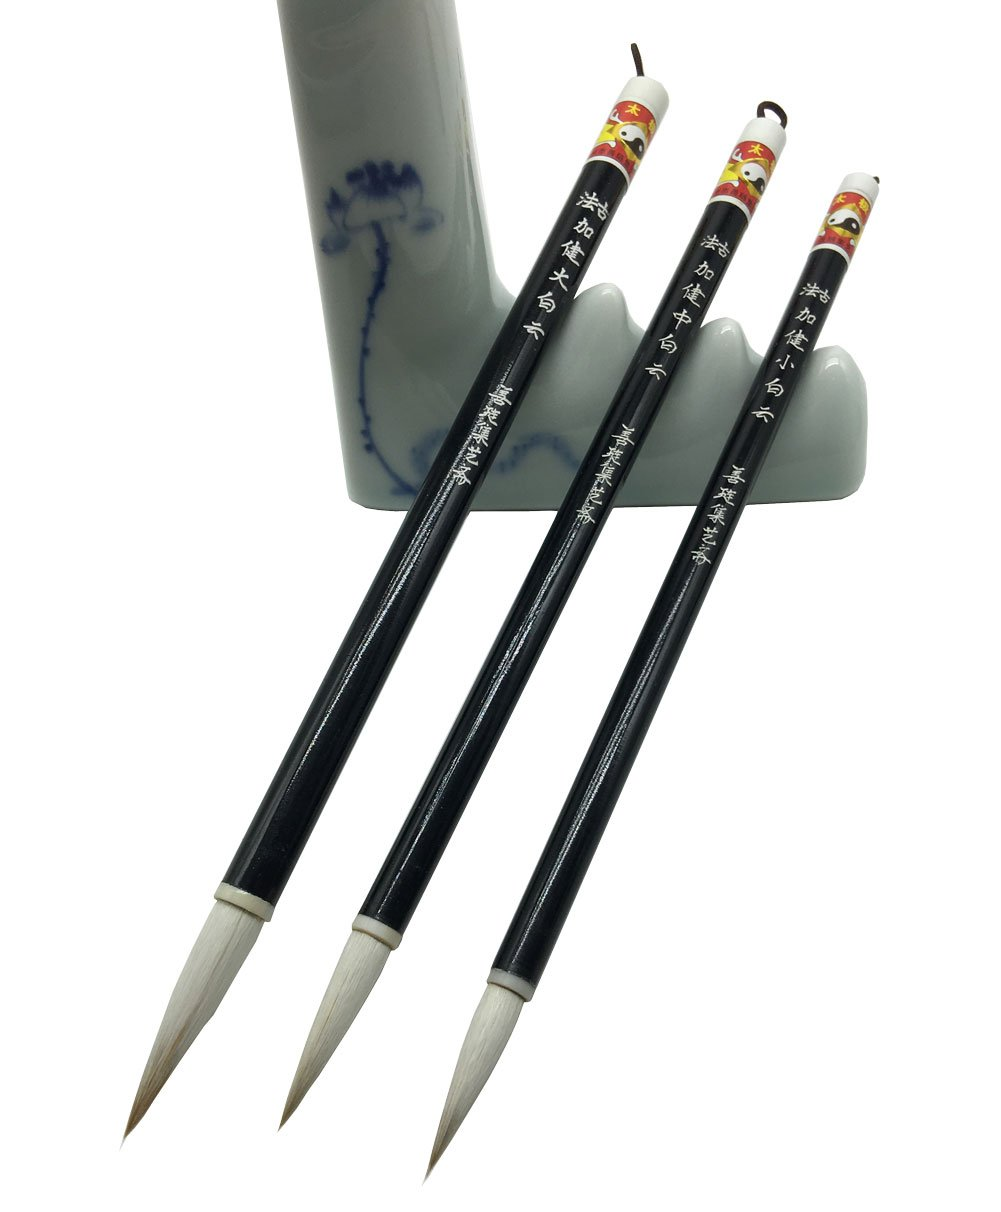 Easyou Hu Brush Chinese Brush for Coloring Painting and Practicing Calligraphy JJBY L+M+S (jjby 3pcs/Pack) by Easyou